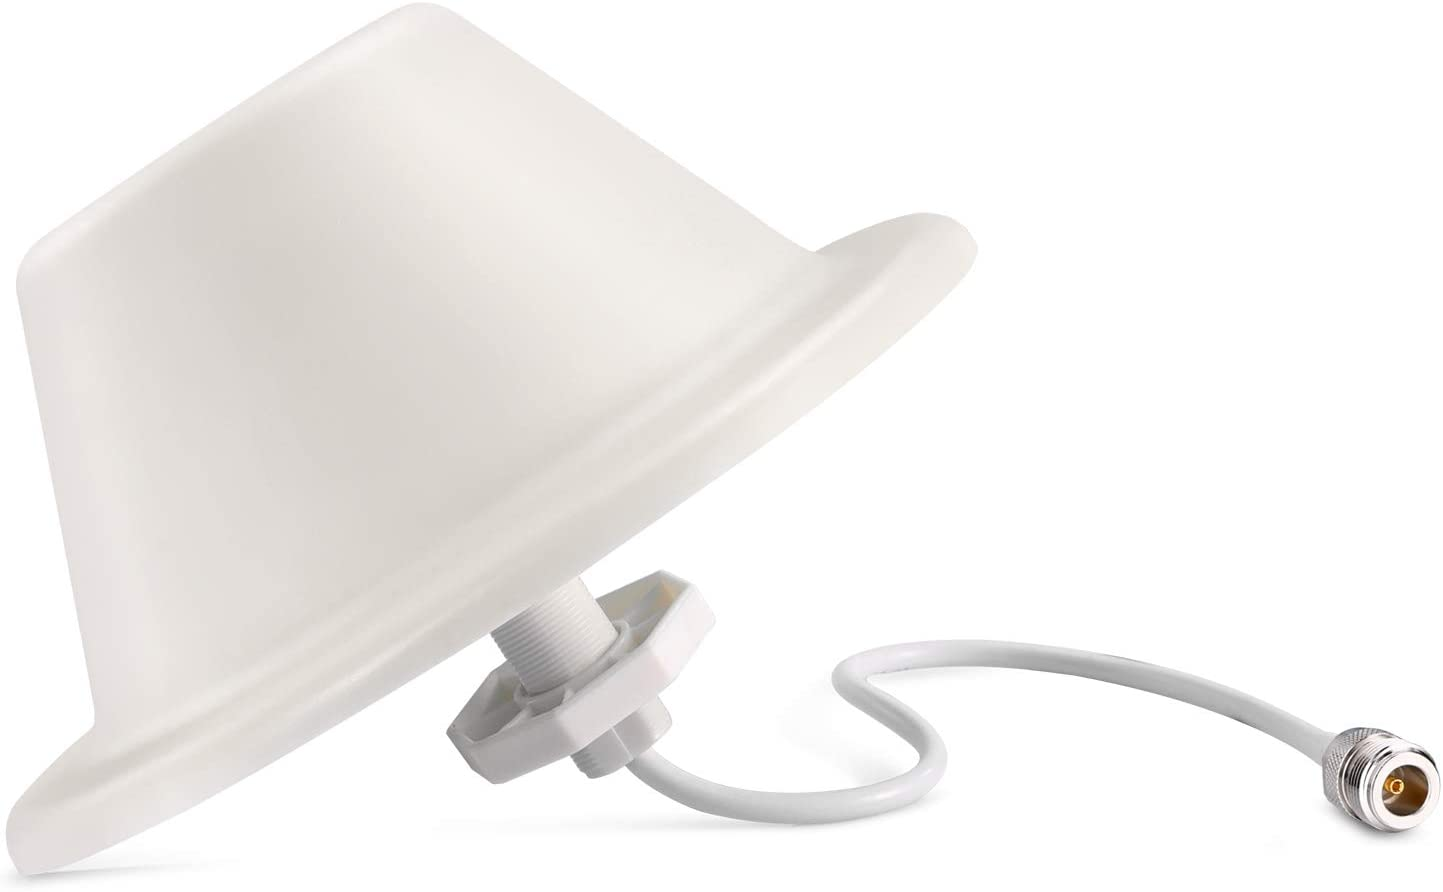 High Performance Wide Band Dome Ceiling Antenna 4G LTE for Mobile Signal Booster Repeater